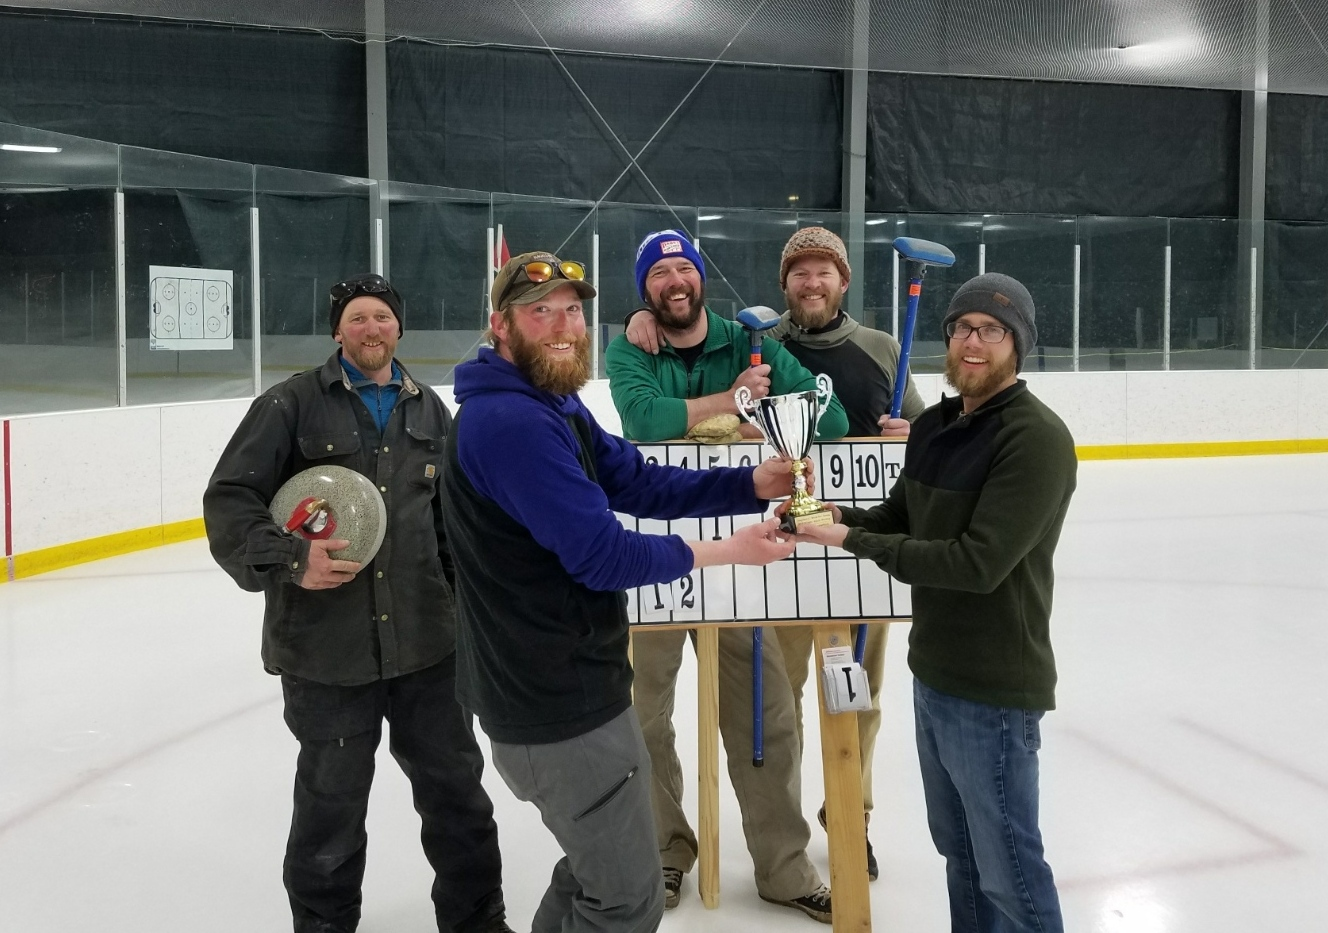 Five smiling males standing in ice rink with championship cup and curling equipment